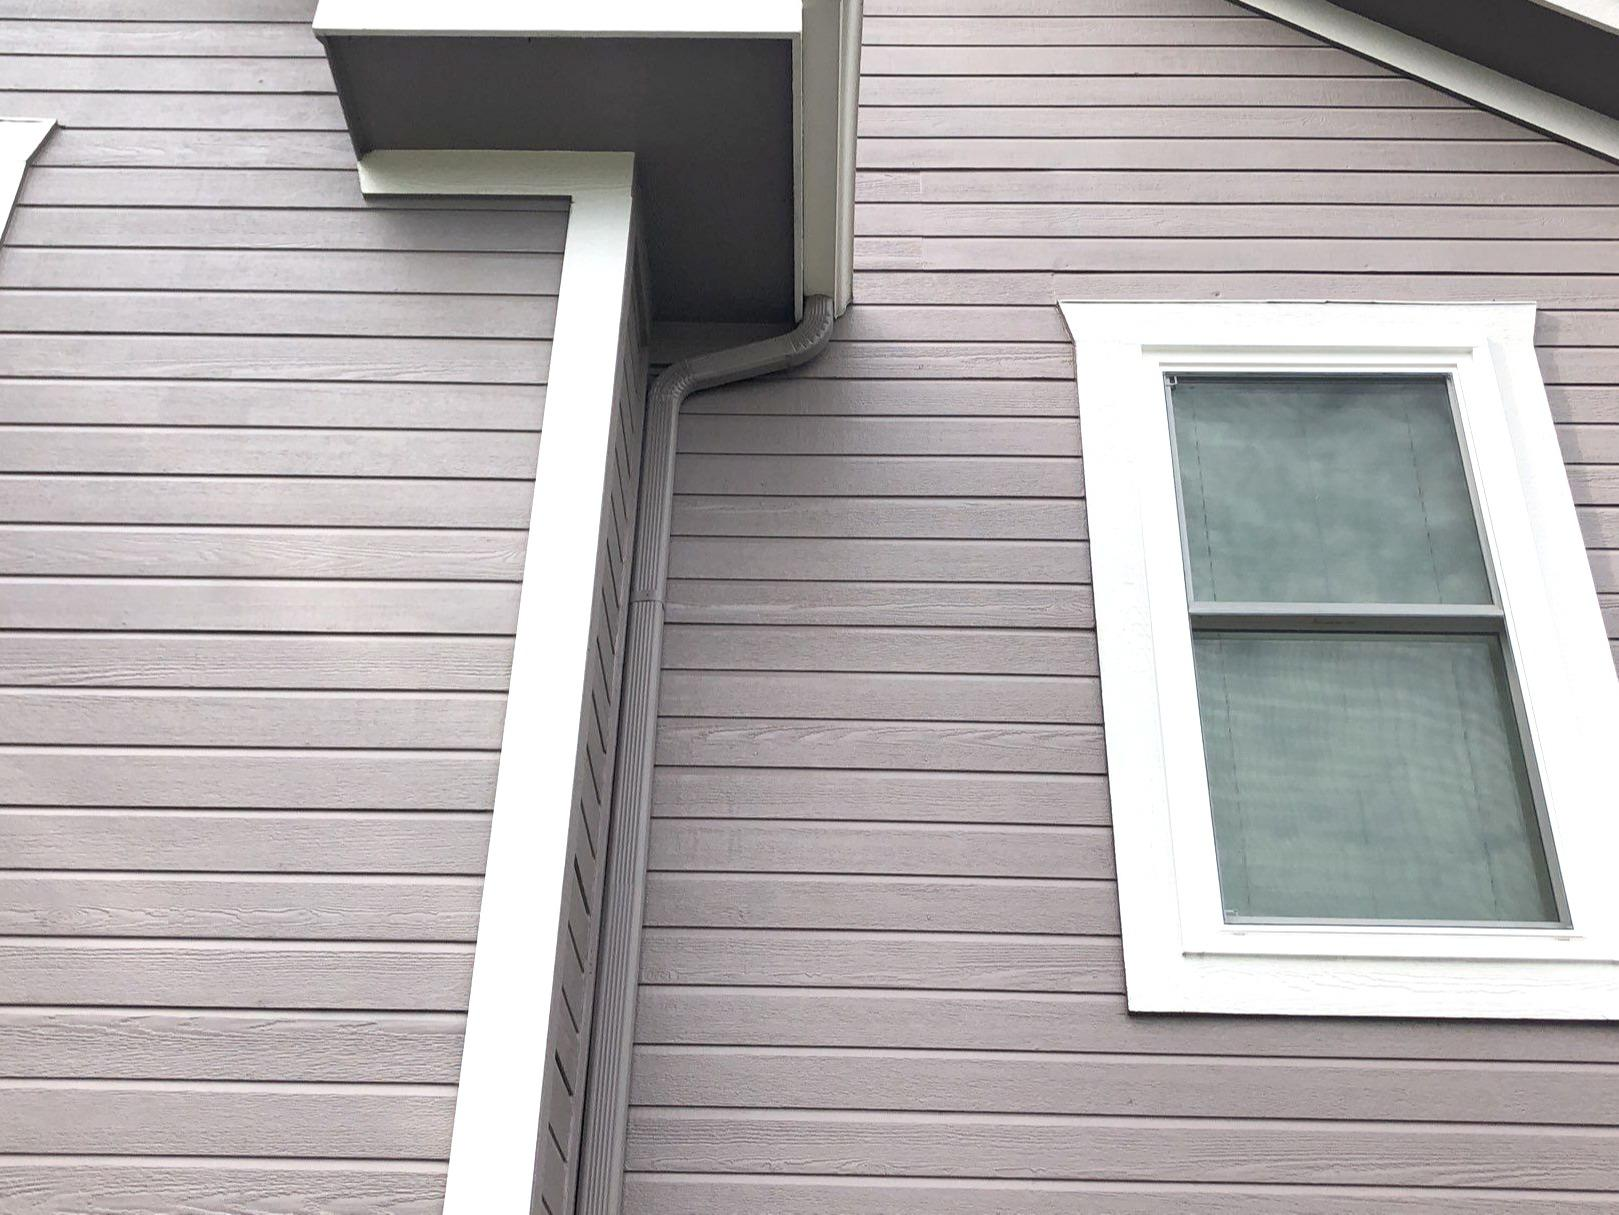 Siding Repair using LP SmartSide at a Home in Smithville, MO - After Photo